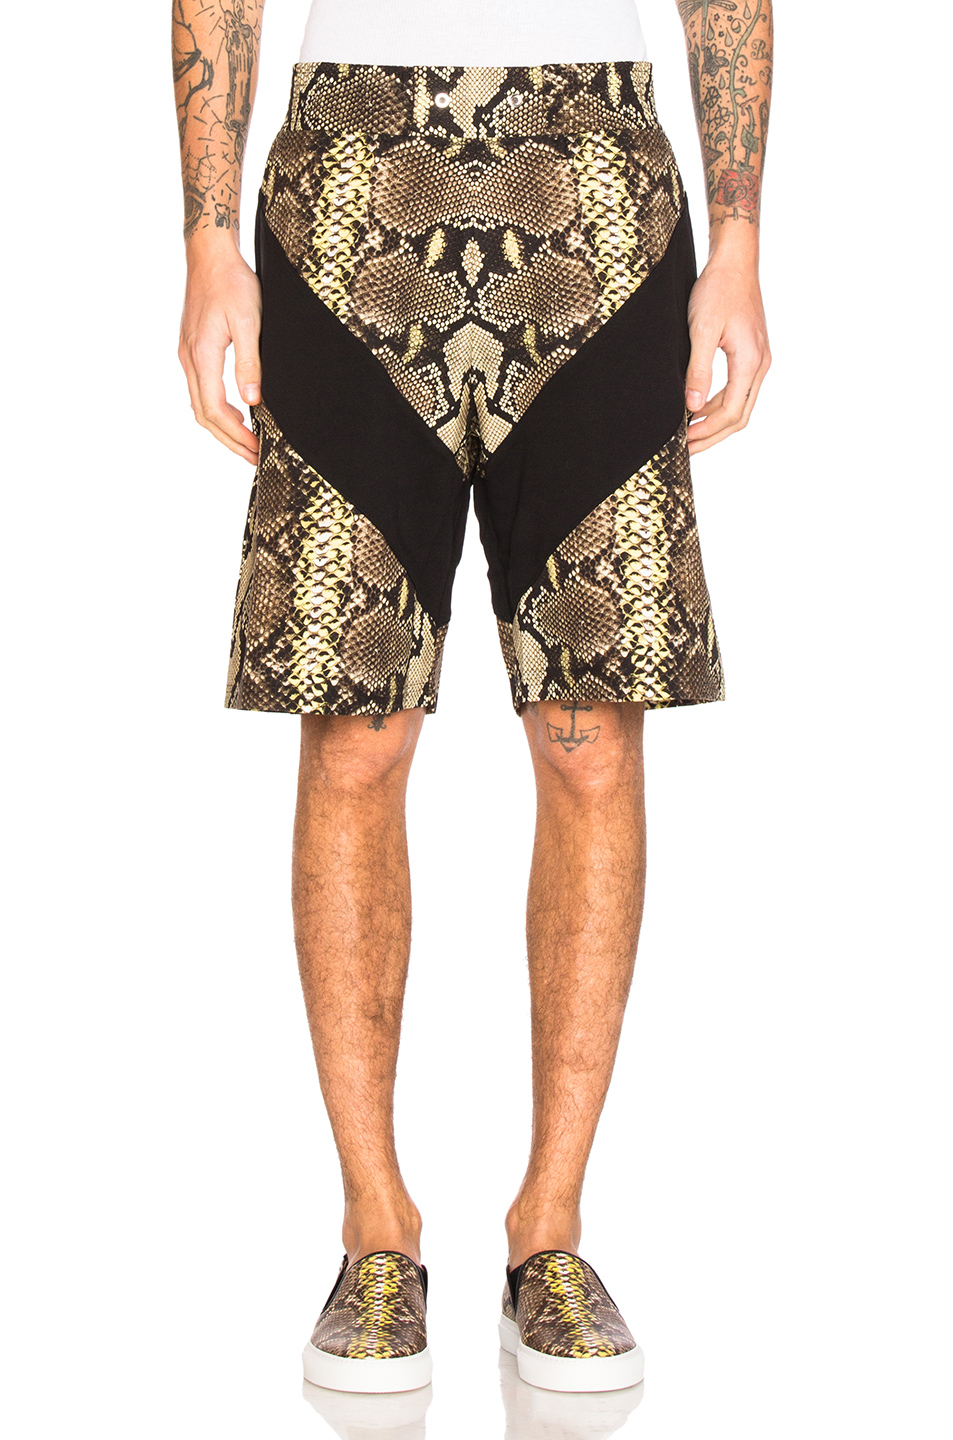 Givenchy Snake Print Bermuda Shorts in Animal Print,Yellow,Brown